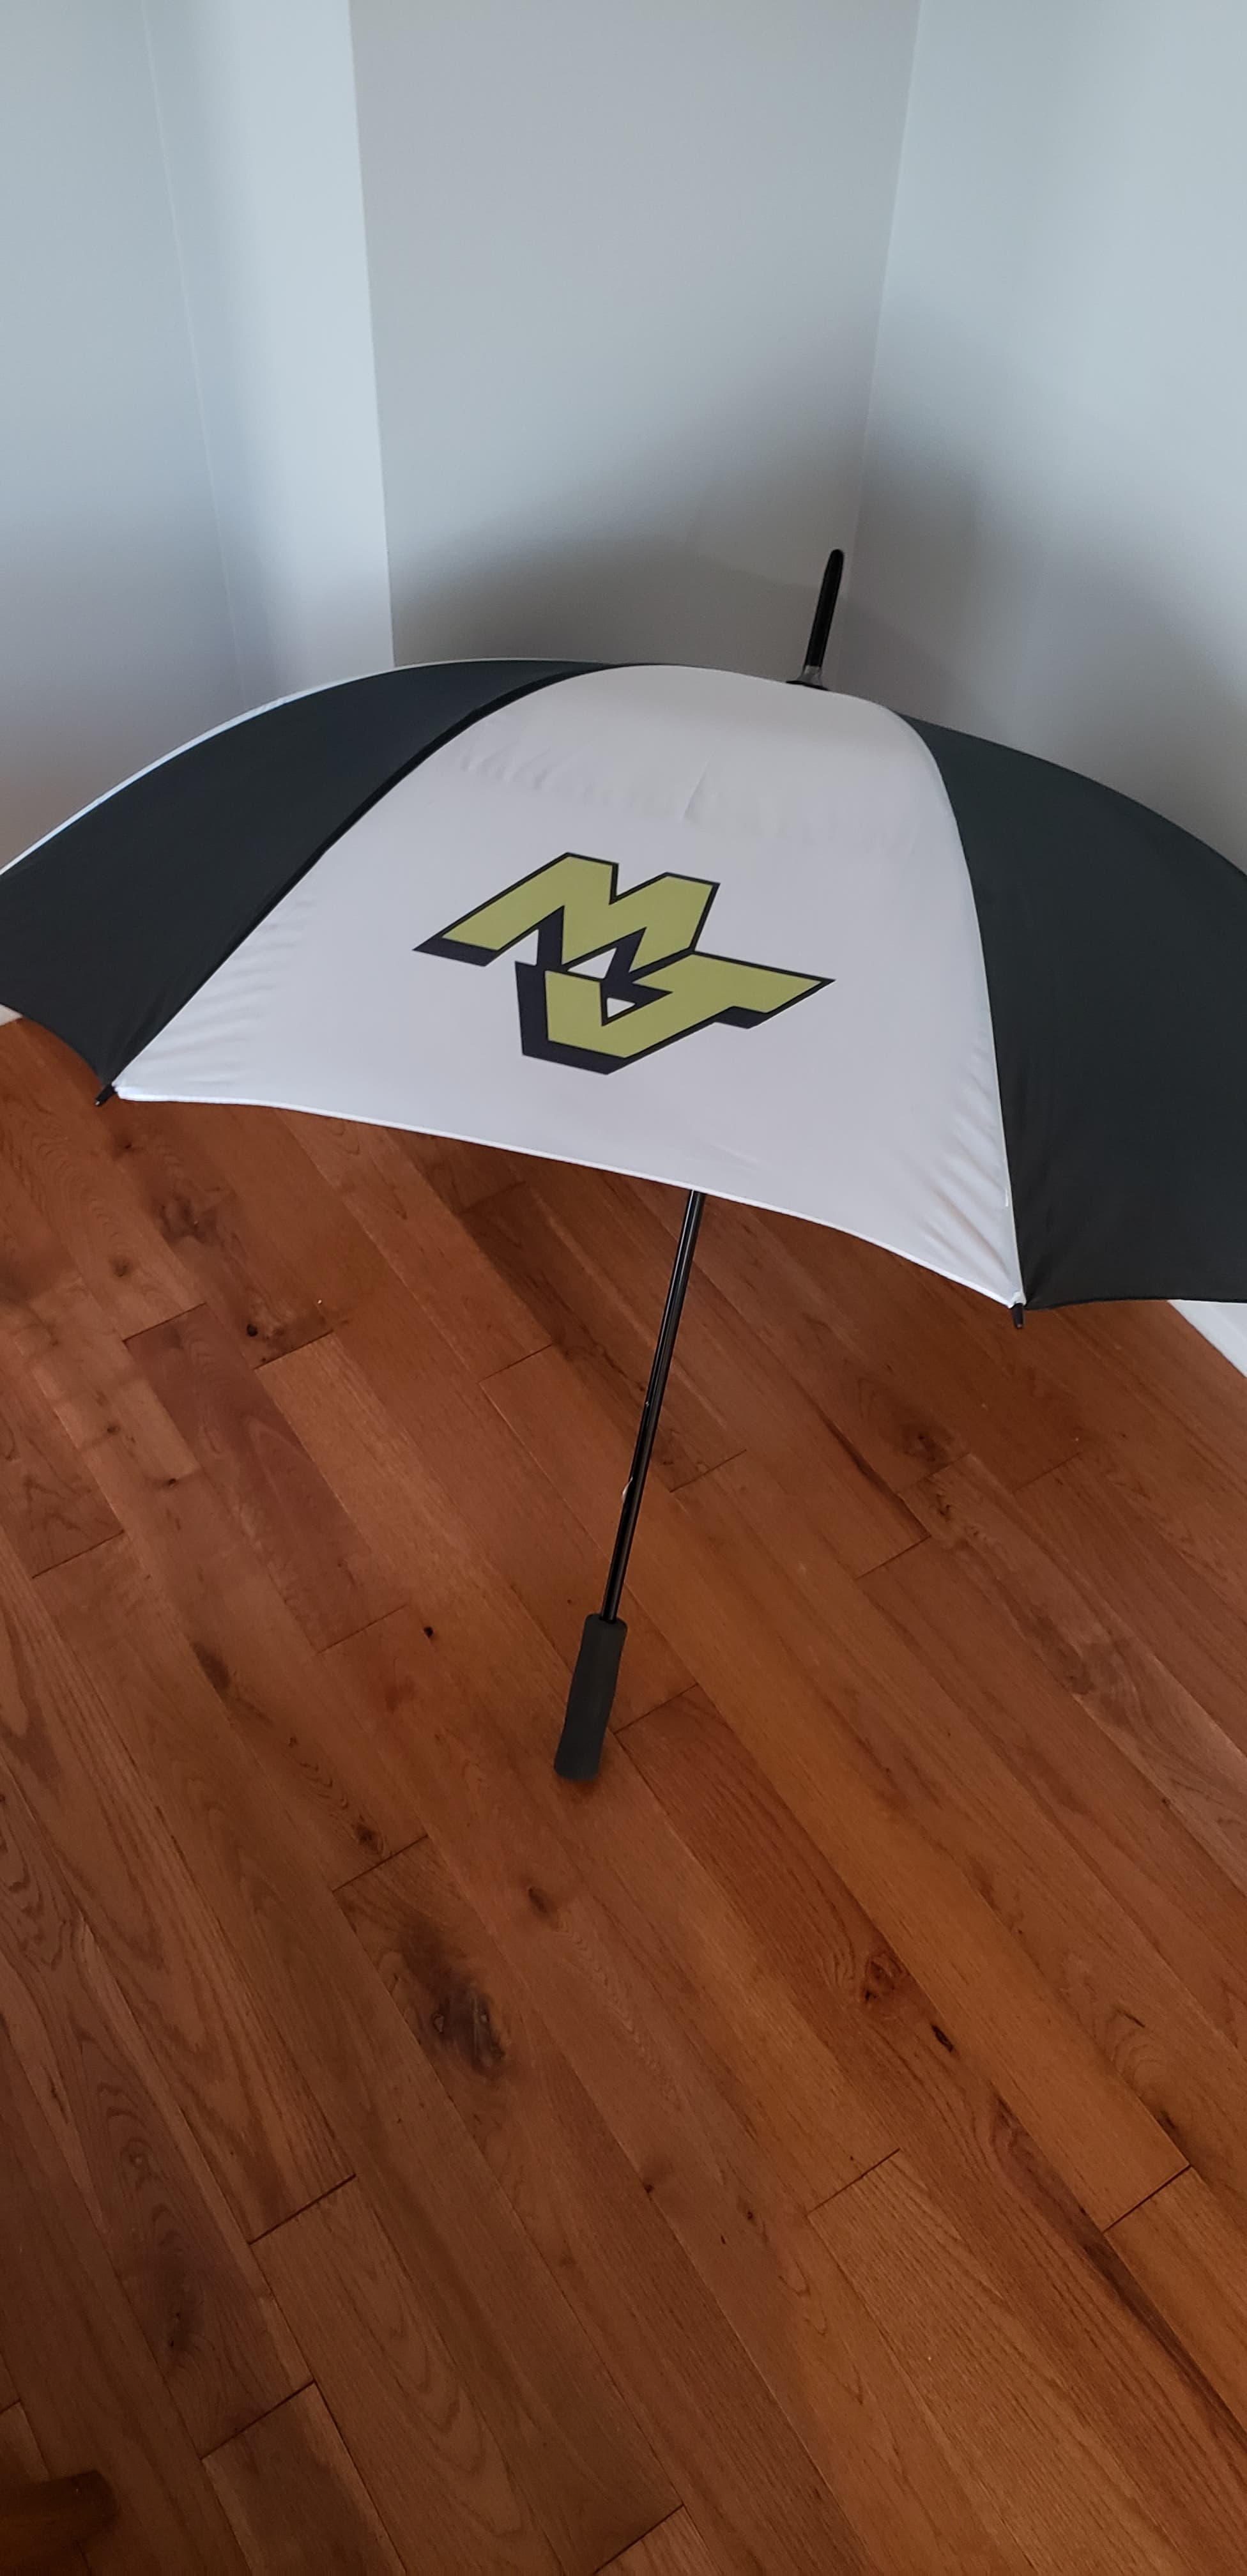 MJ Umbrella